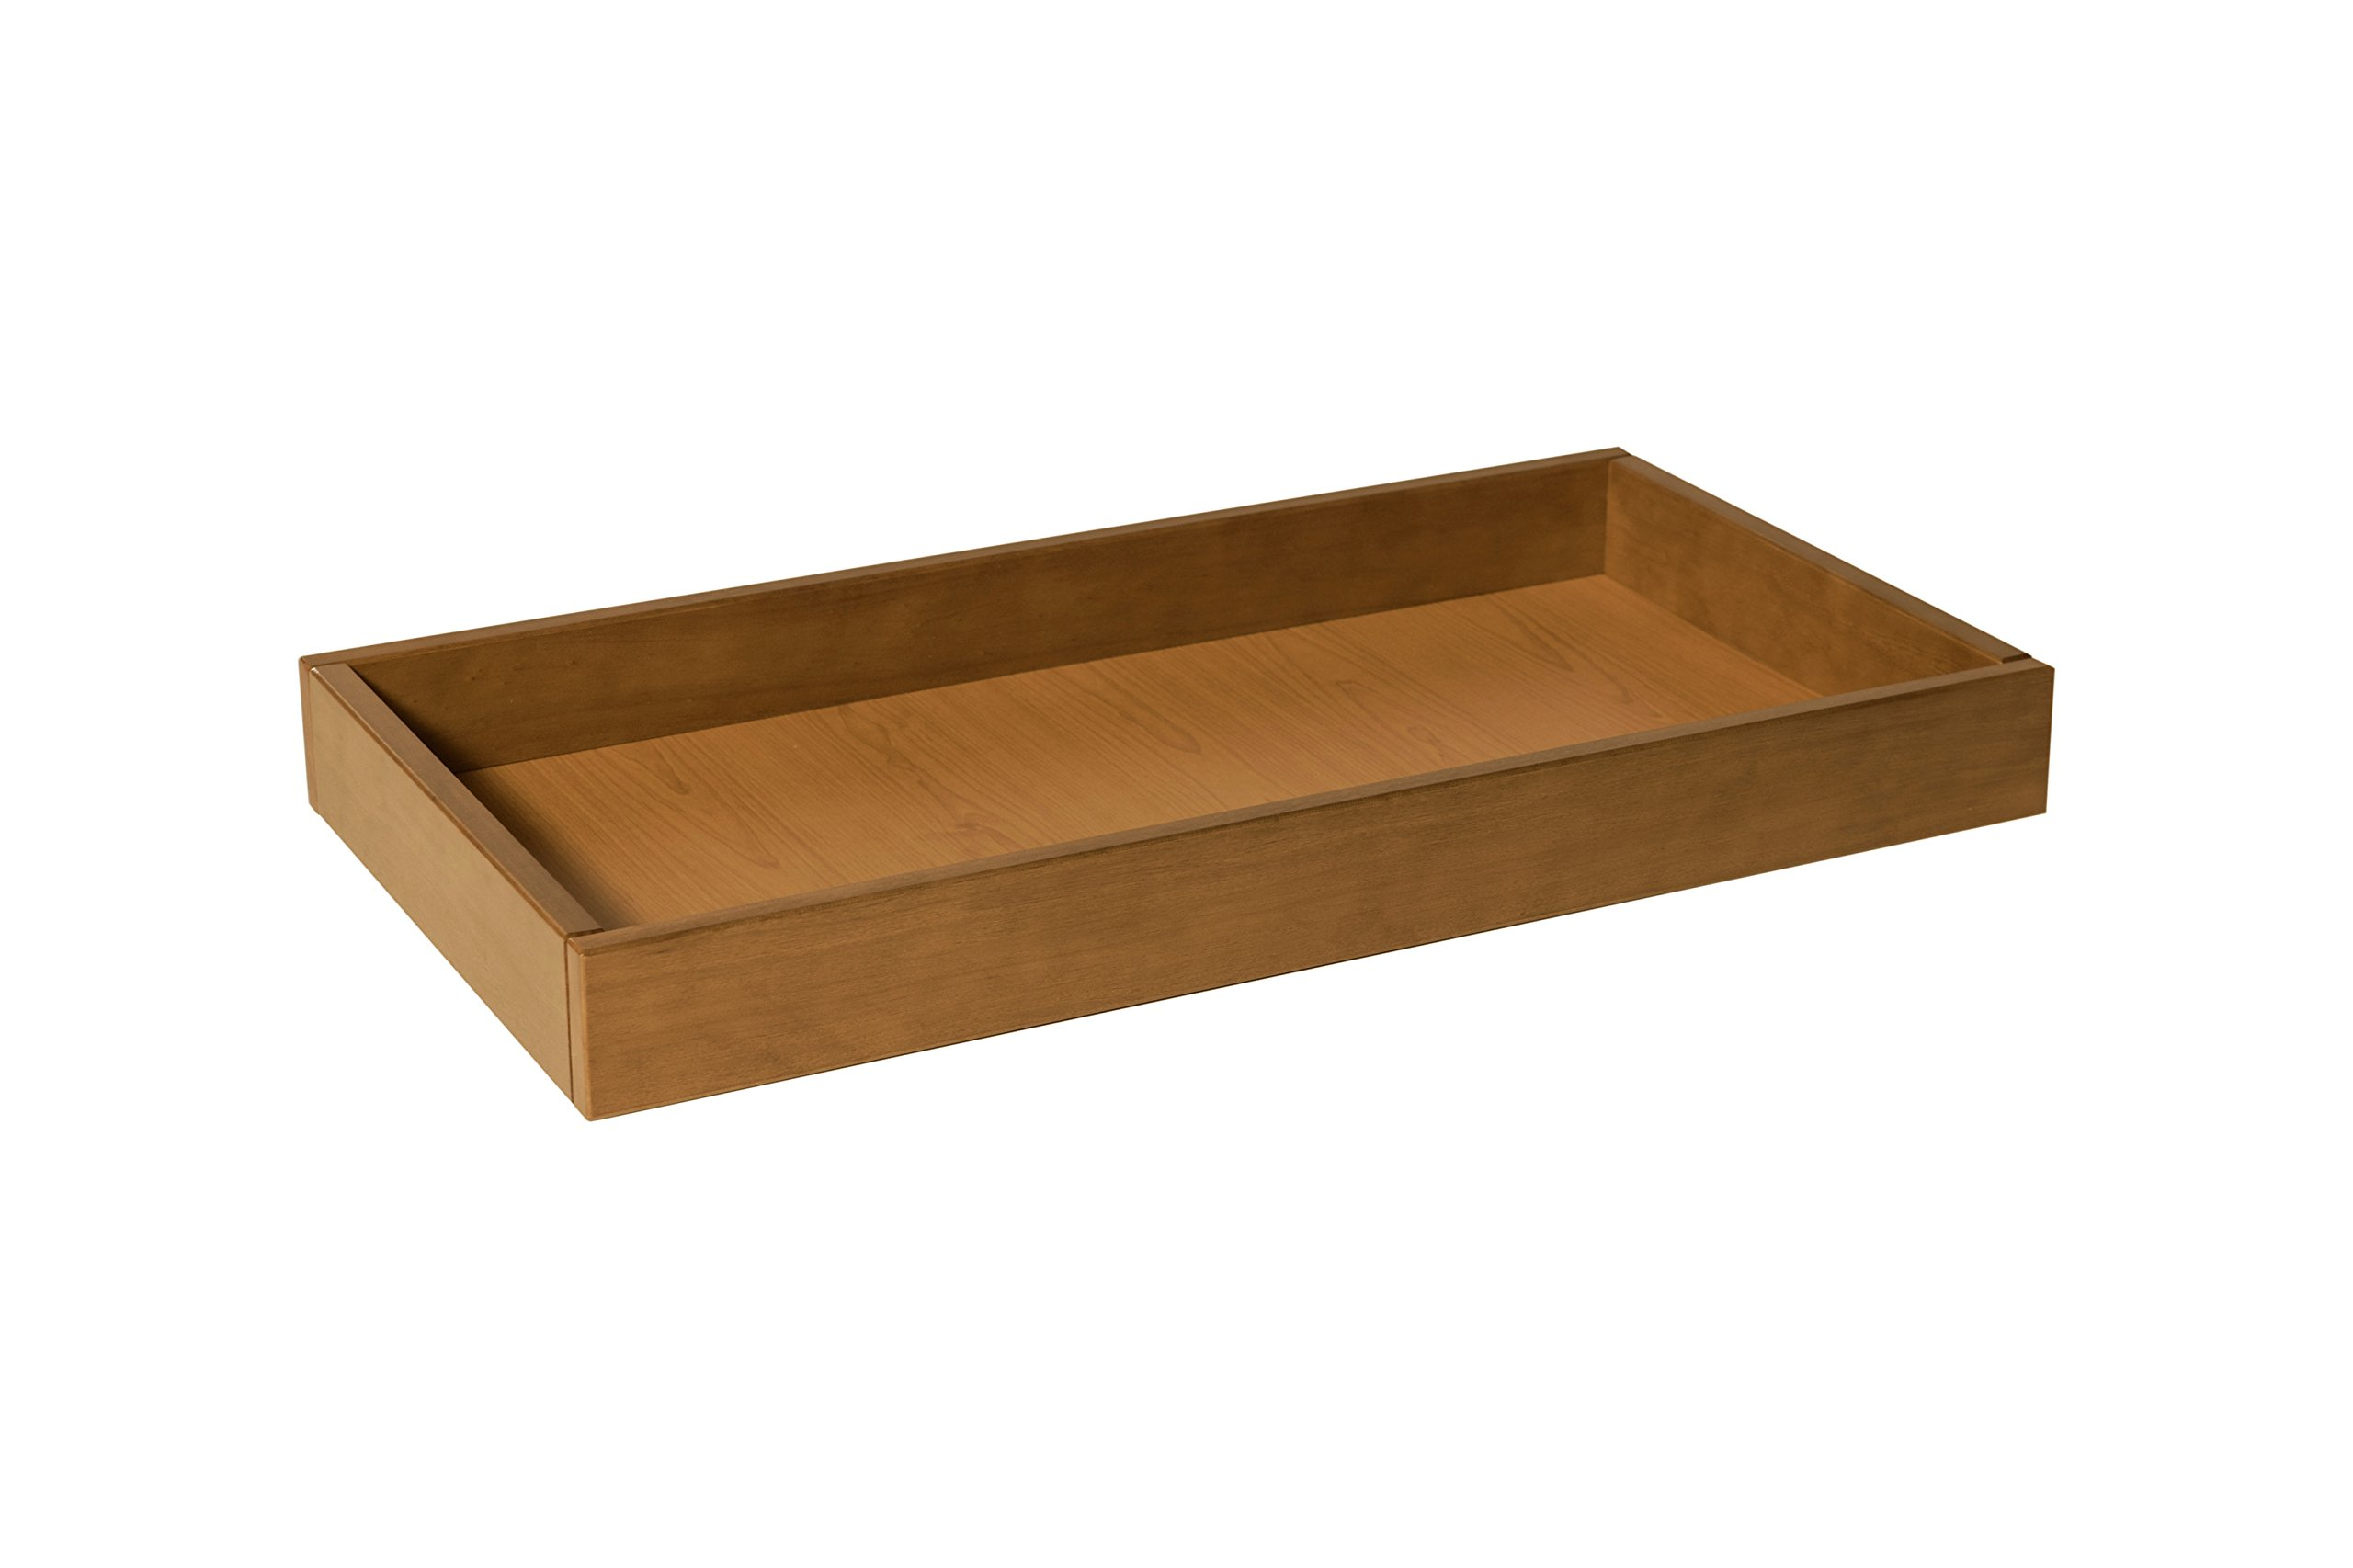 DaVinci Universal Removable Changing Tray, Chestnut